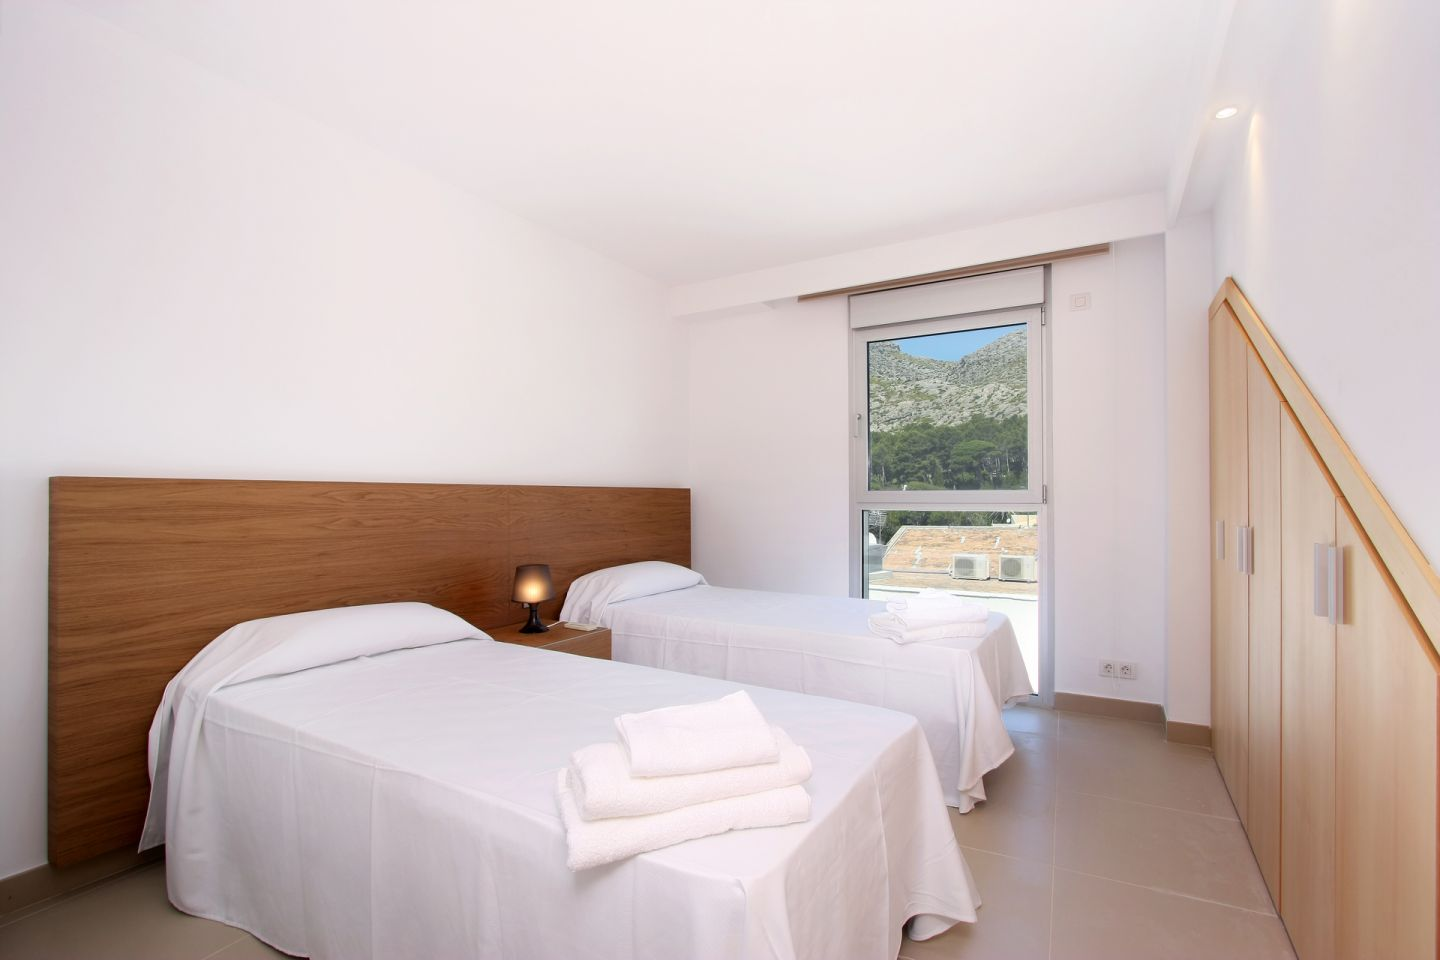 2 Bed Other for sale in Cala San Vicente 10